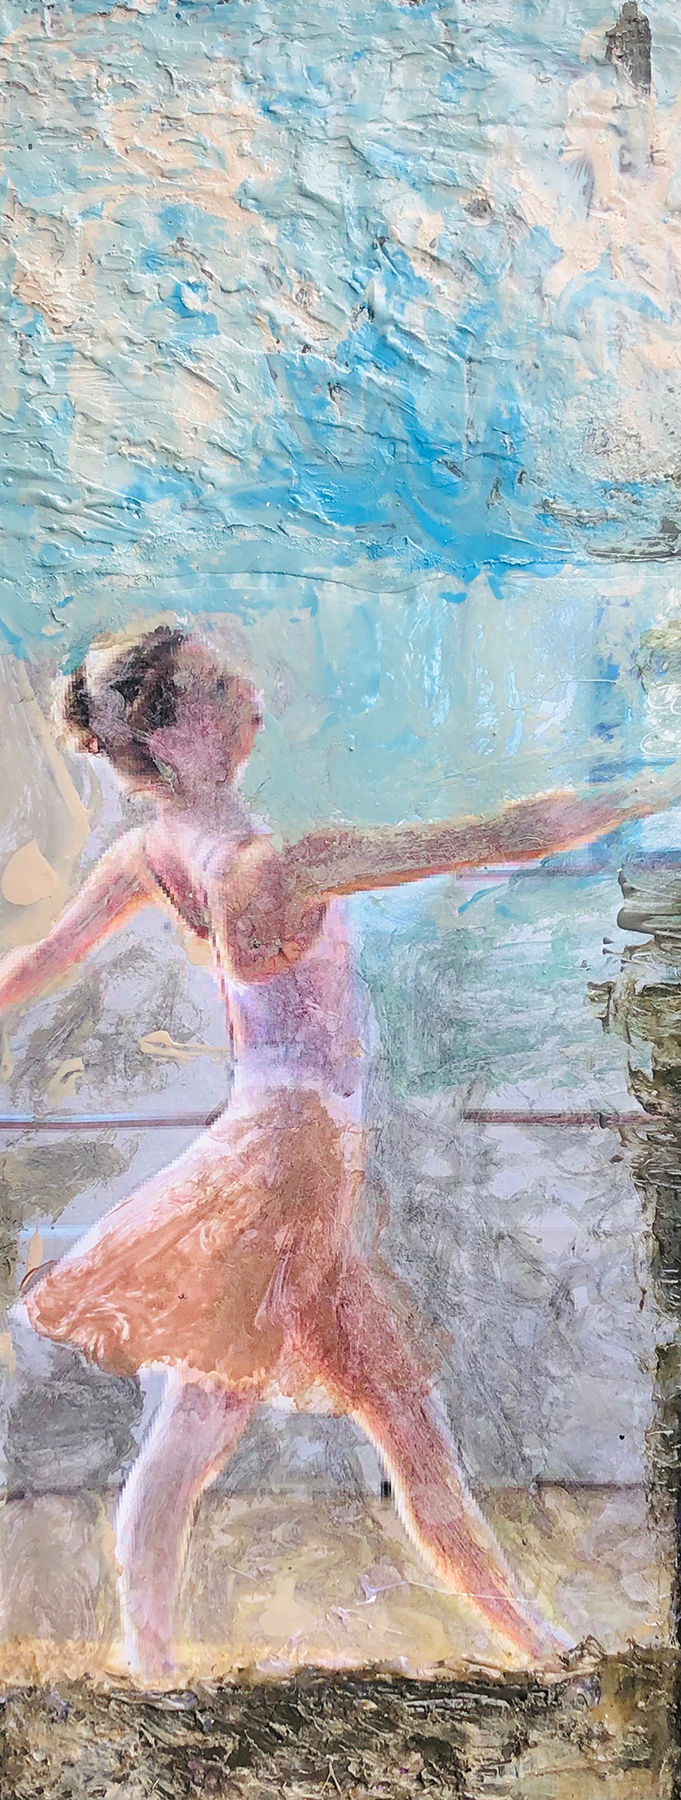 """</br><p align=""""left""""><strong><em>Barre</em></strong></br>22 x 10""""</br>Mixed media</br>$125</br><strong><a href=""""https://checkout.square.site/buy/5Y5IGCK5AEUJ4REC2W66RYIA"""">PURCHASE</a></strong></p><br>"""